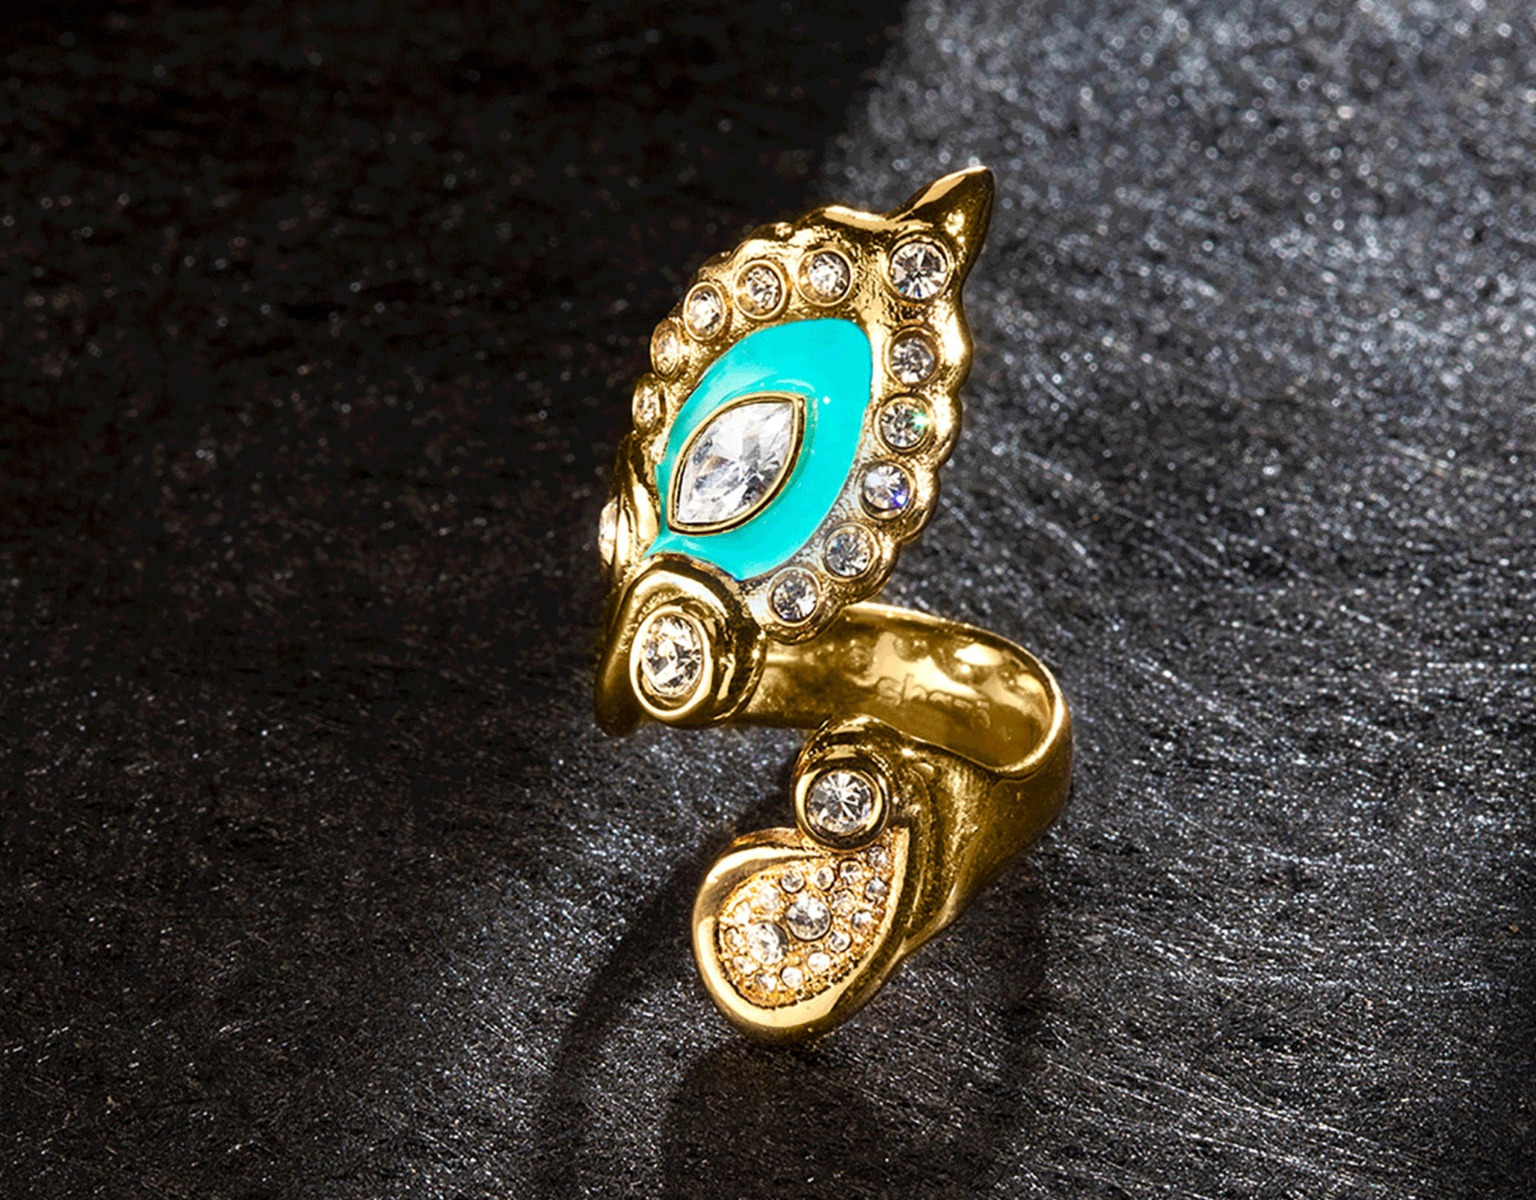 Muse Teal Ring